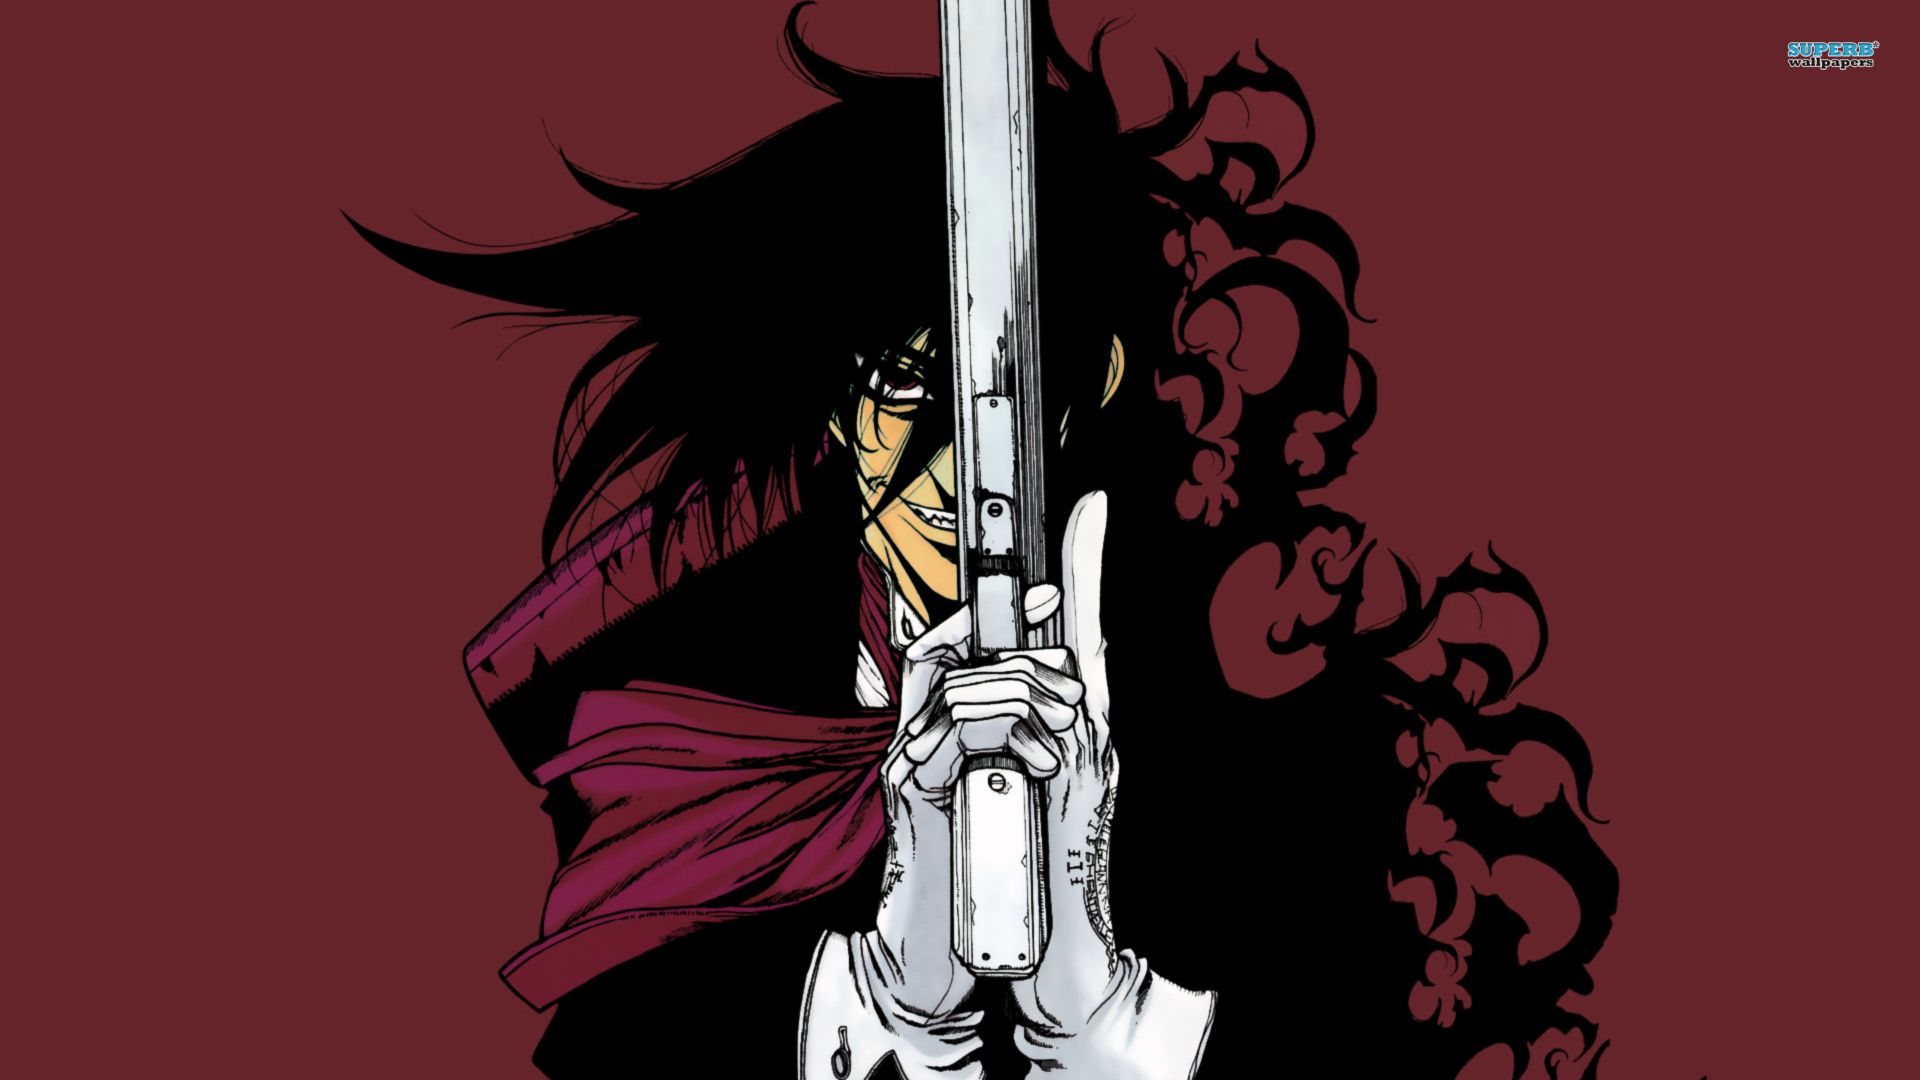 Photos Hellsing Ultimate Alucard Anime Wallpaper Anime Hellsing